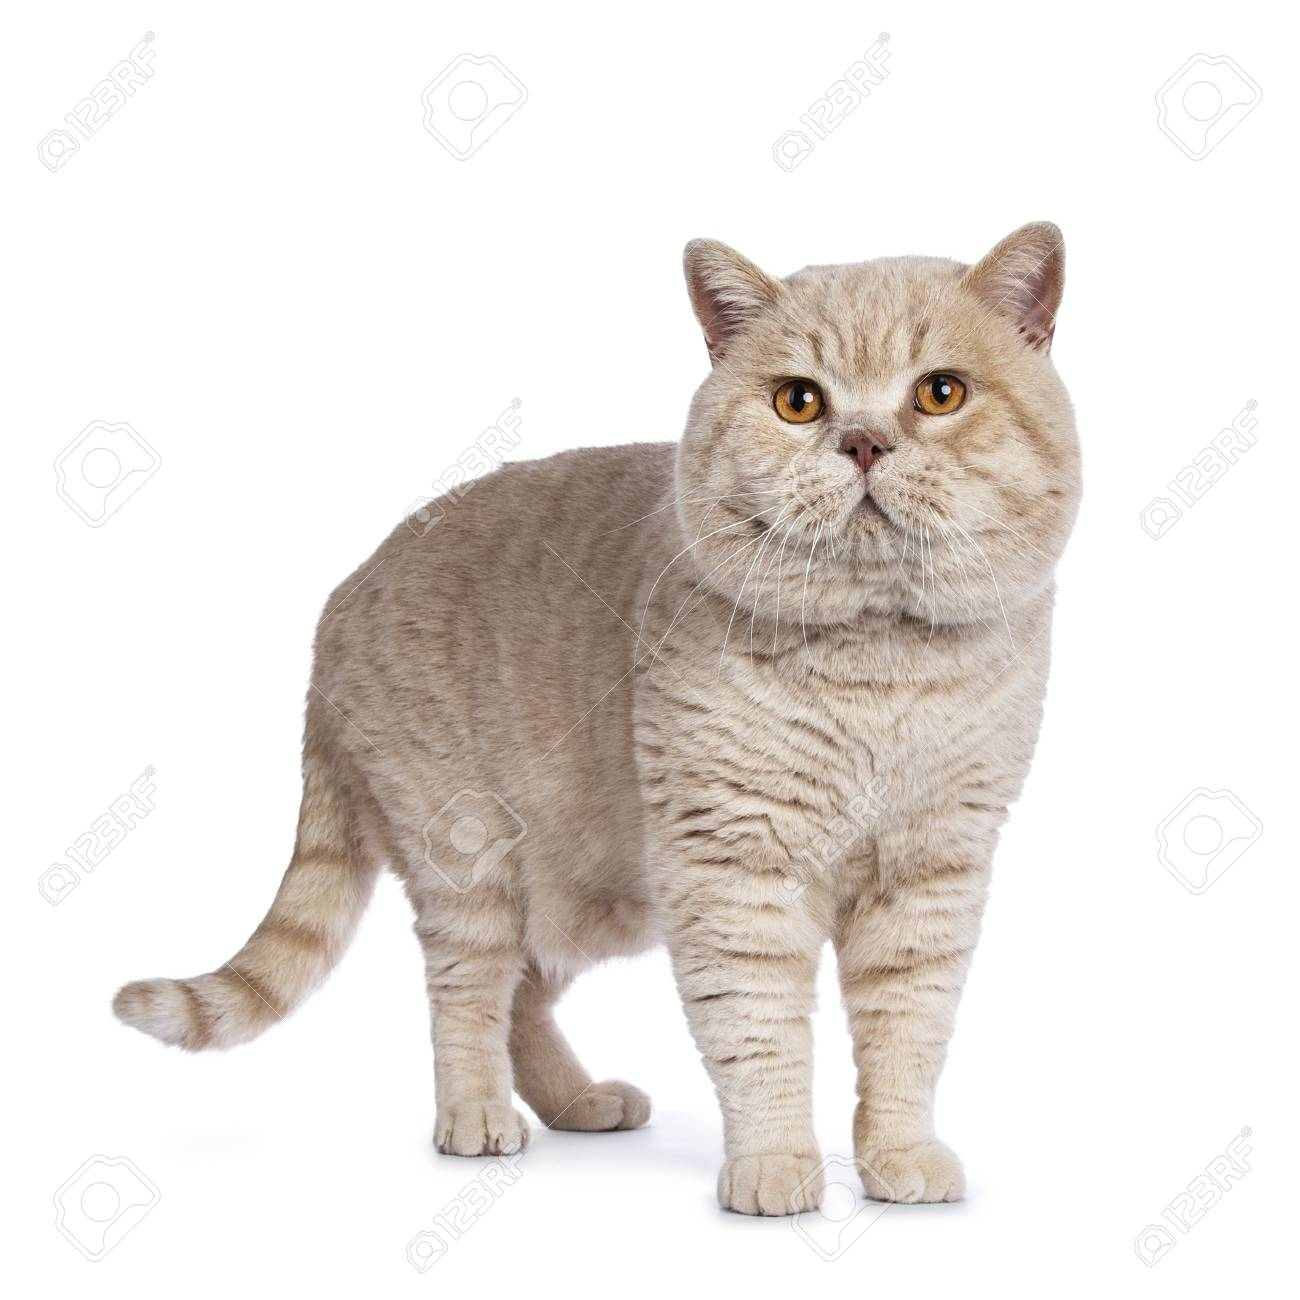 Impressive cream adult male British Shorthair cat standing isolated on white background - 100449345